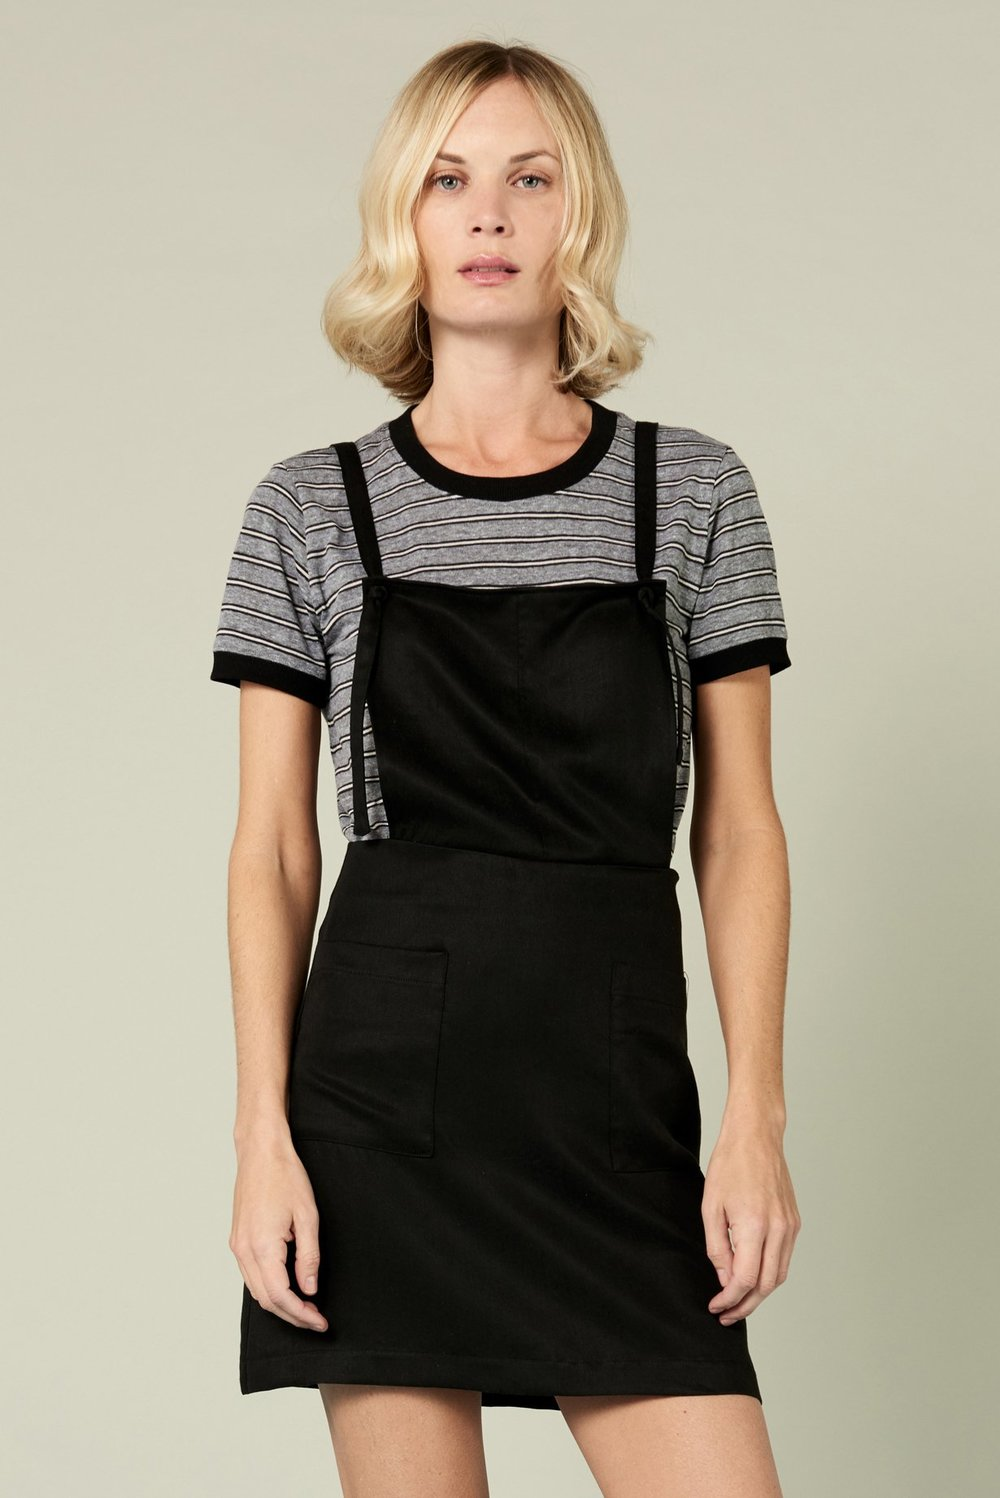 Whimsy+Row - Delia Pinafore Dress in Black